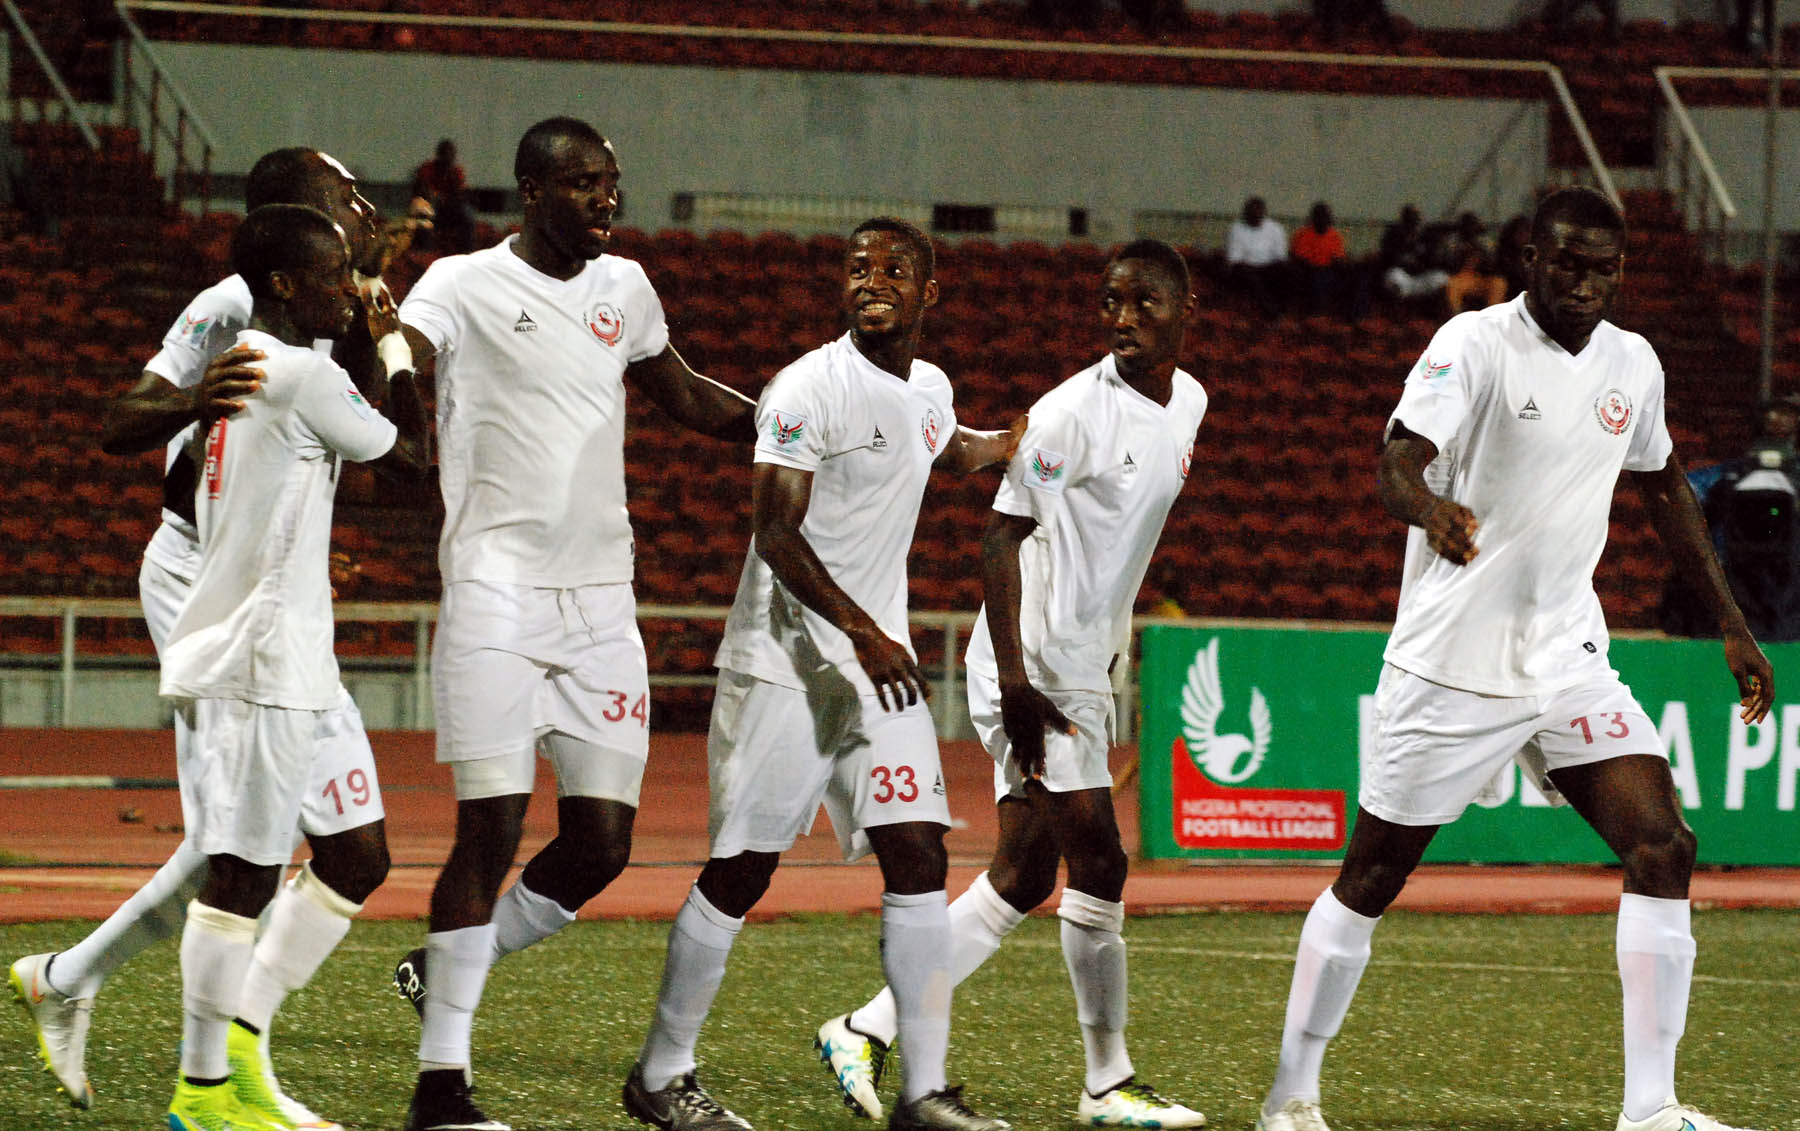 NPFL: Rangers Beat MFM, Revive Title Hopes